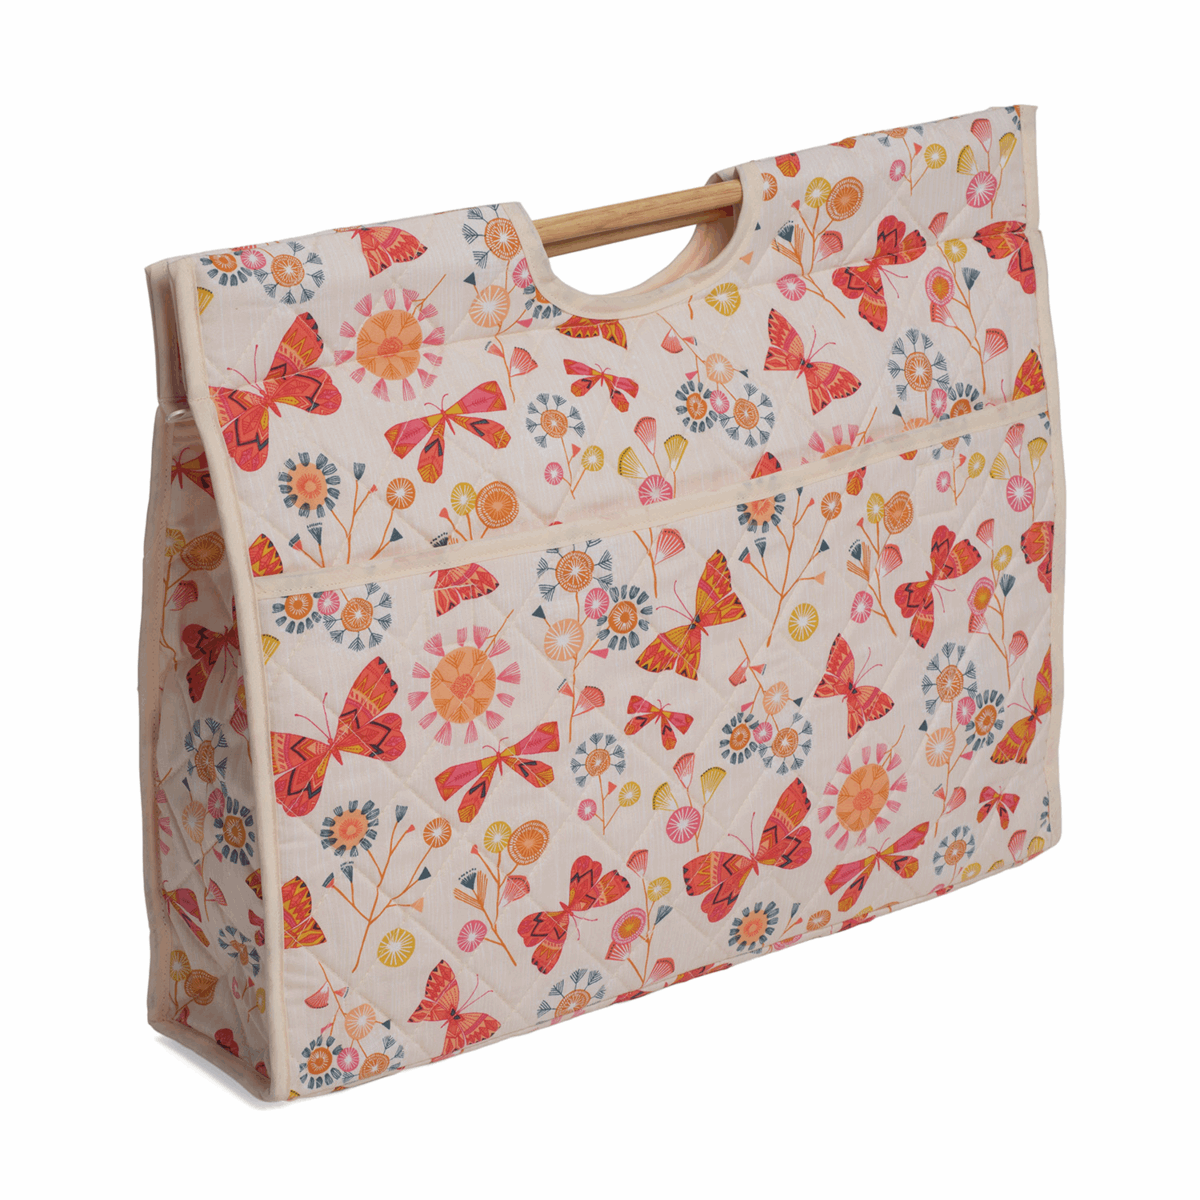 Picture of Craft Bag with Wooden Handles: Butterflies